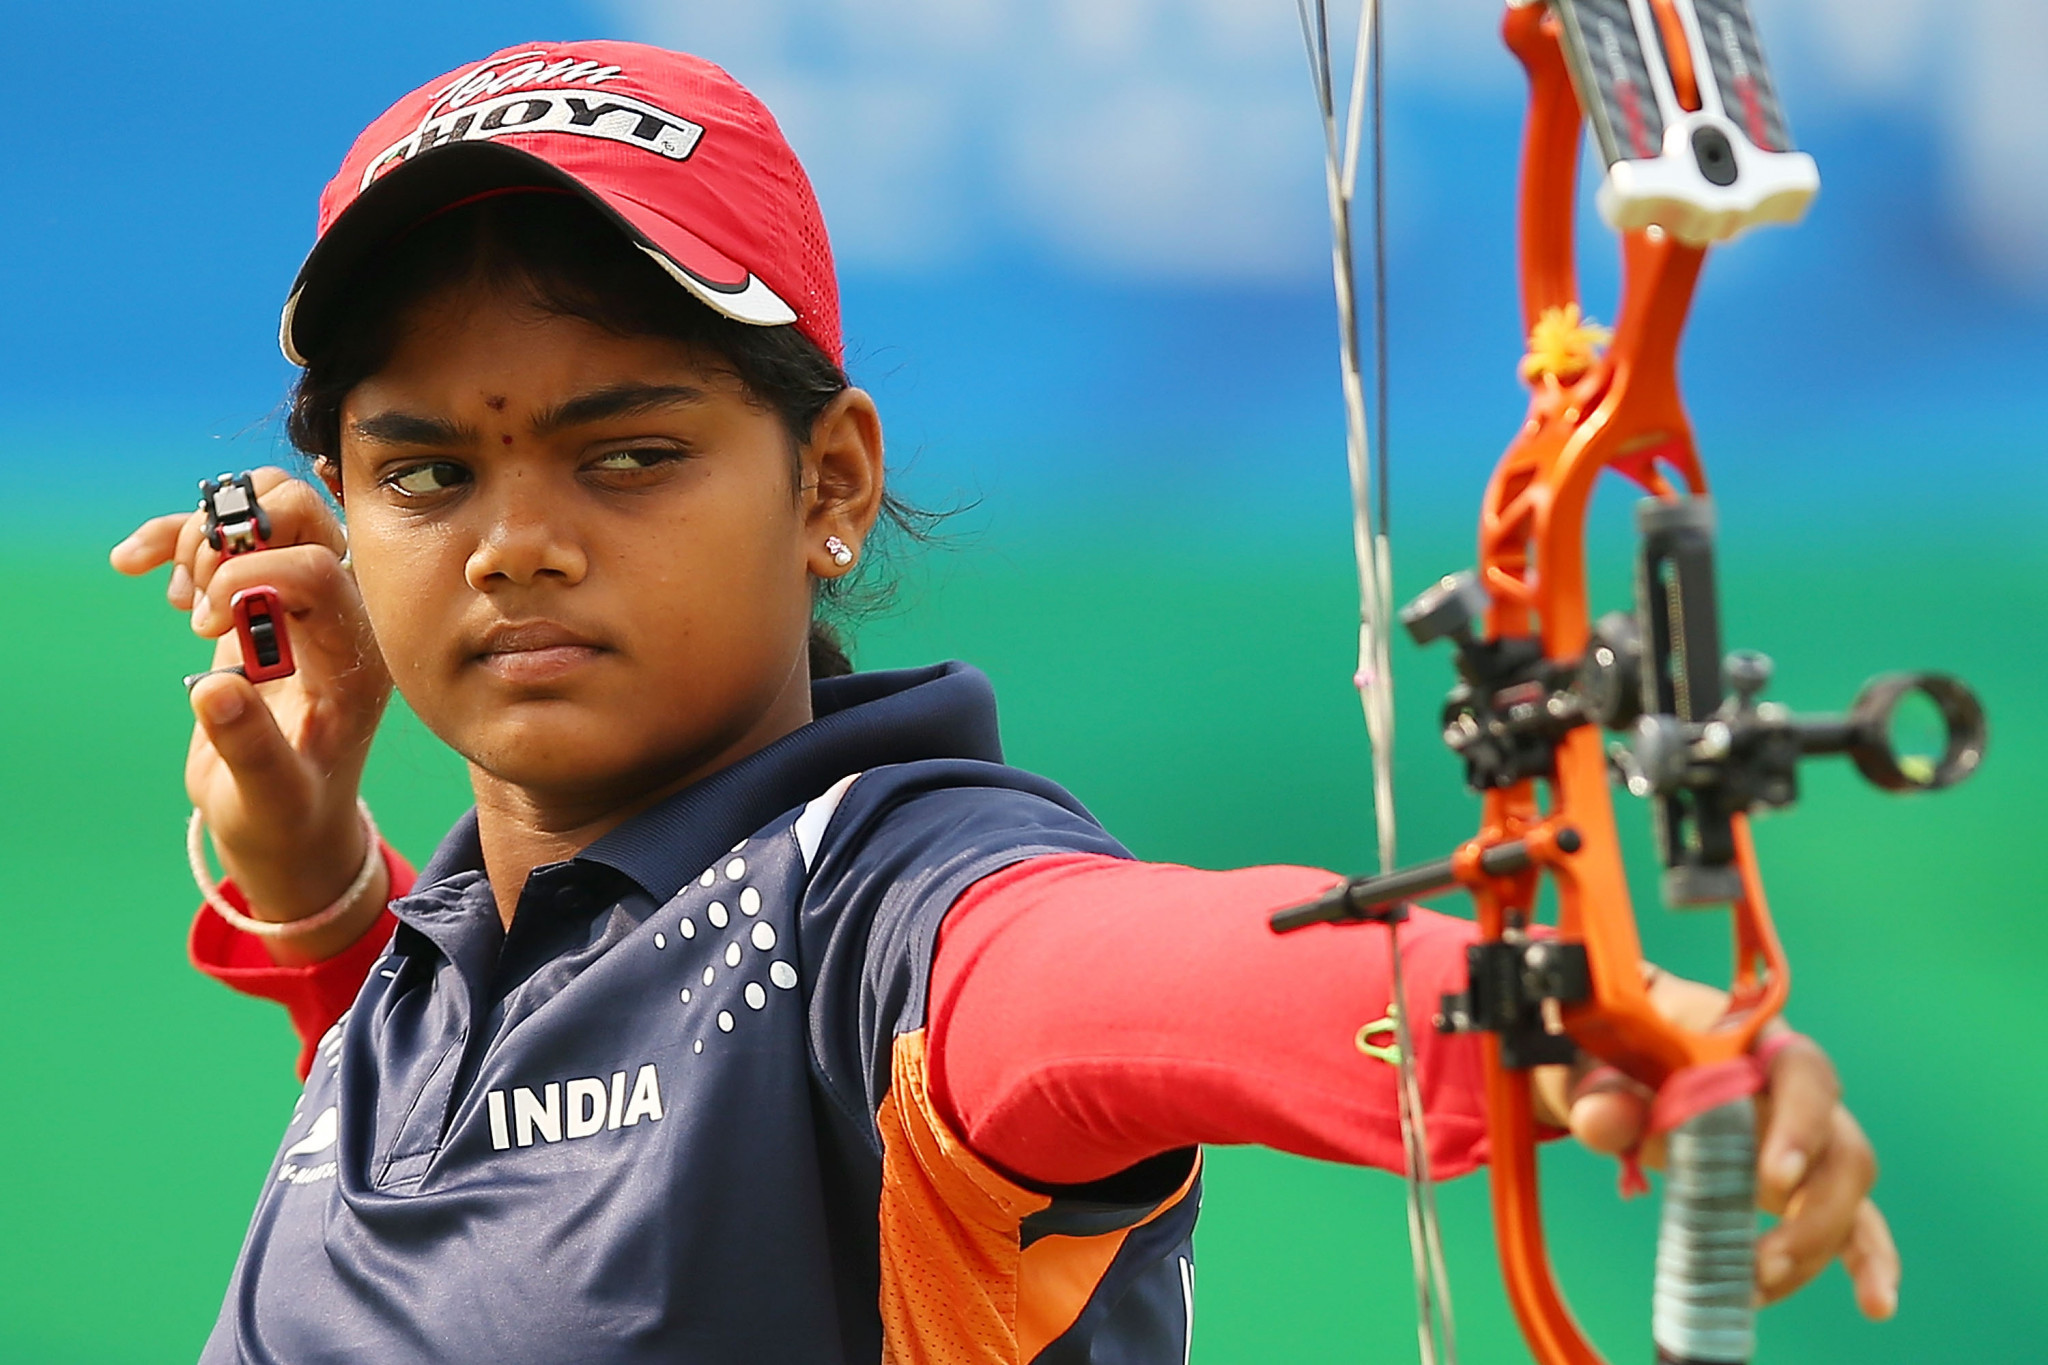 India and Mexico close in on first world titles at World Archery Championships